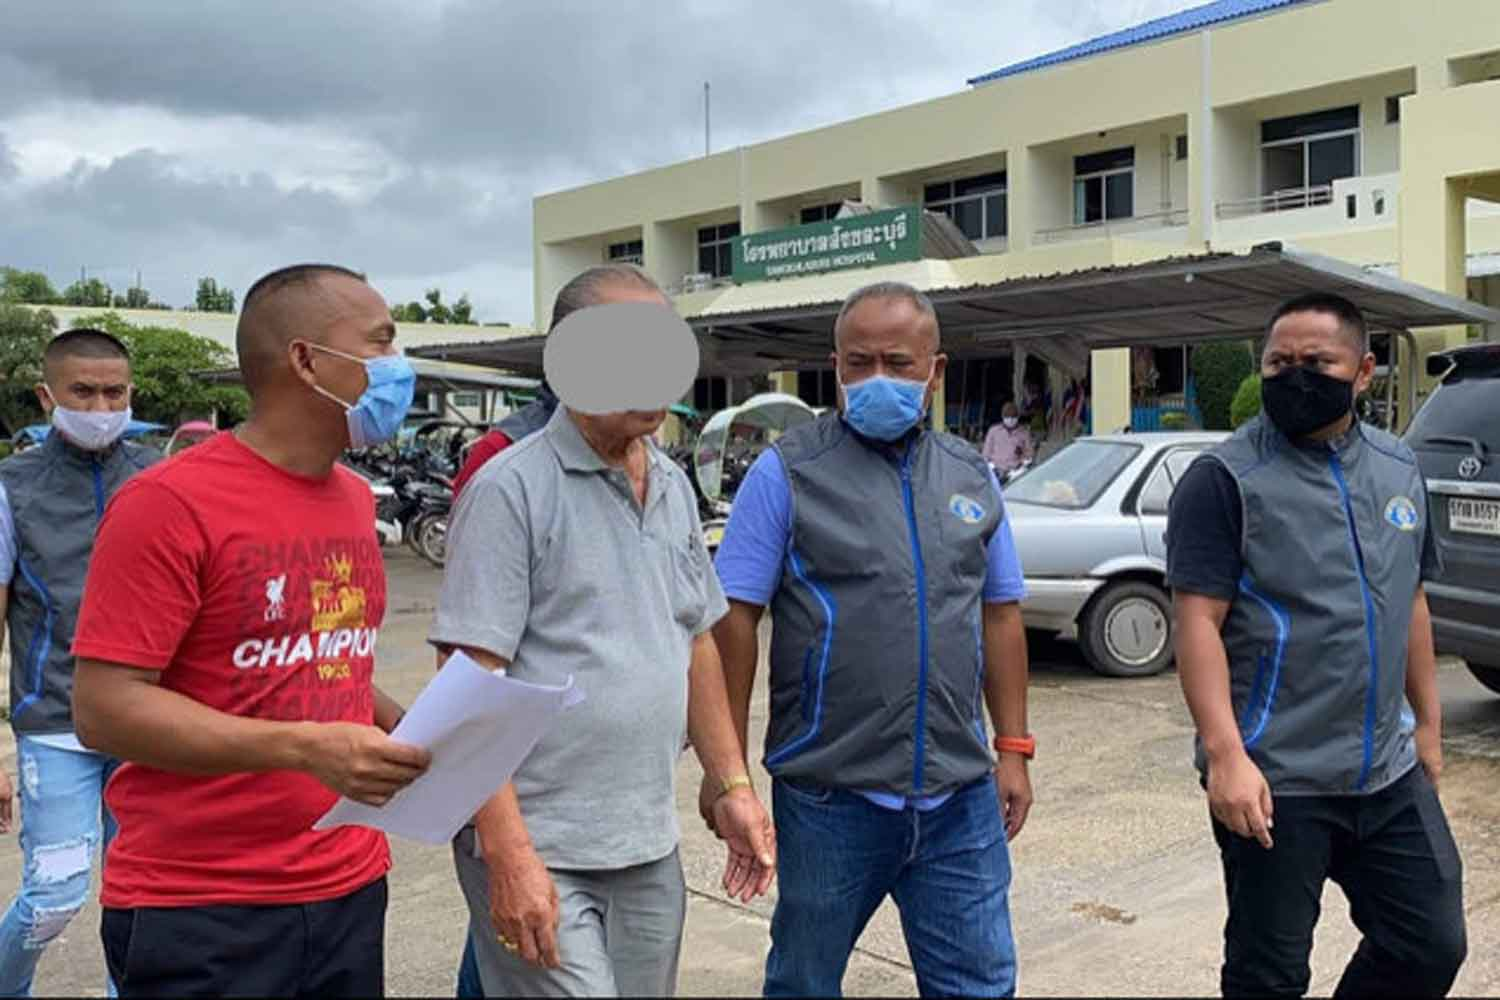 Sakol Wichaidit, second left, is escorted to Muang police station in Surat Thani. He was arrested in Sangkhlaburi district, Kanchanaburi, after 12 years on the run. (Photo: Supapong Chaolan)